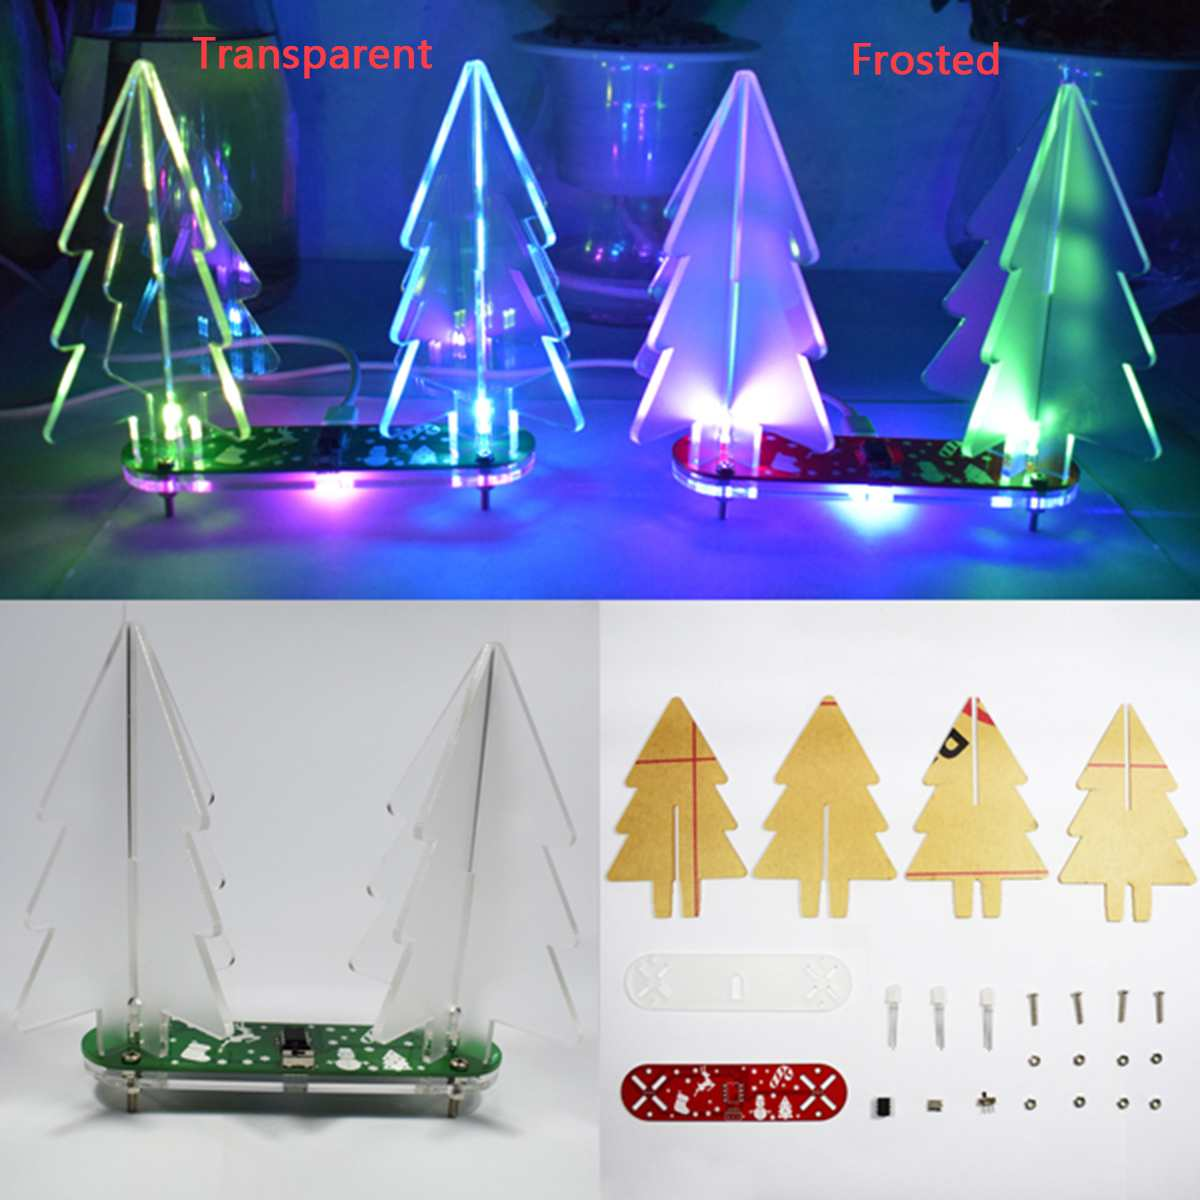 DIY 3D LED Acrylic Christmas Tree Electronic Learning Kit Module Full Color Changing for Christmas Tree Decorations DIY Crafts image